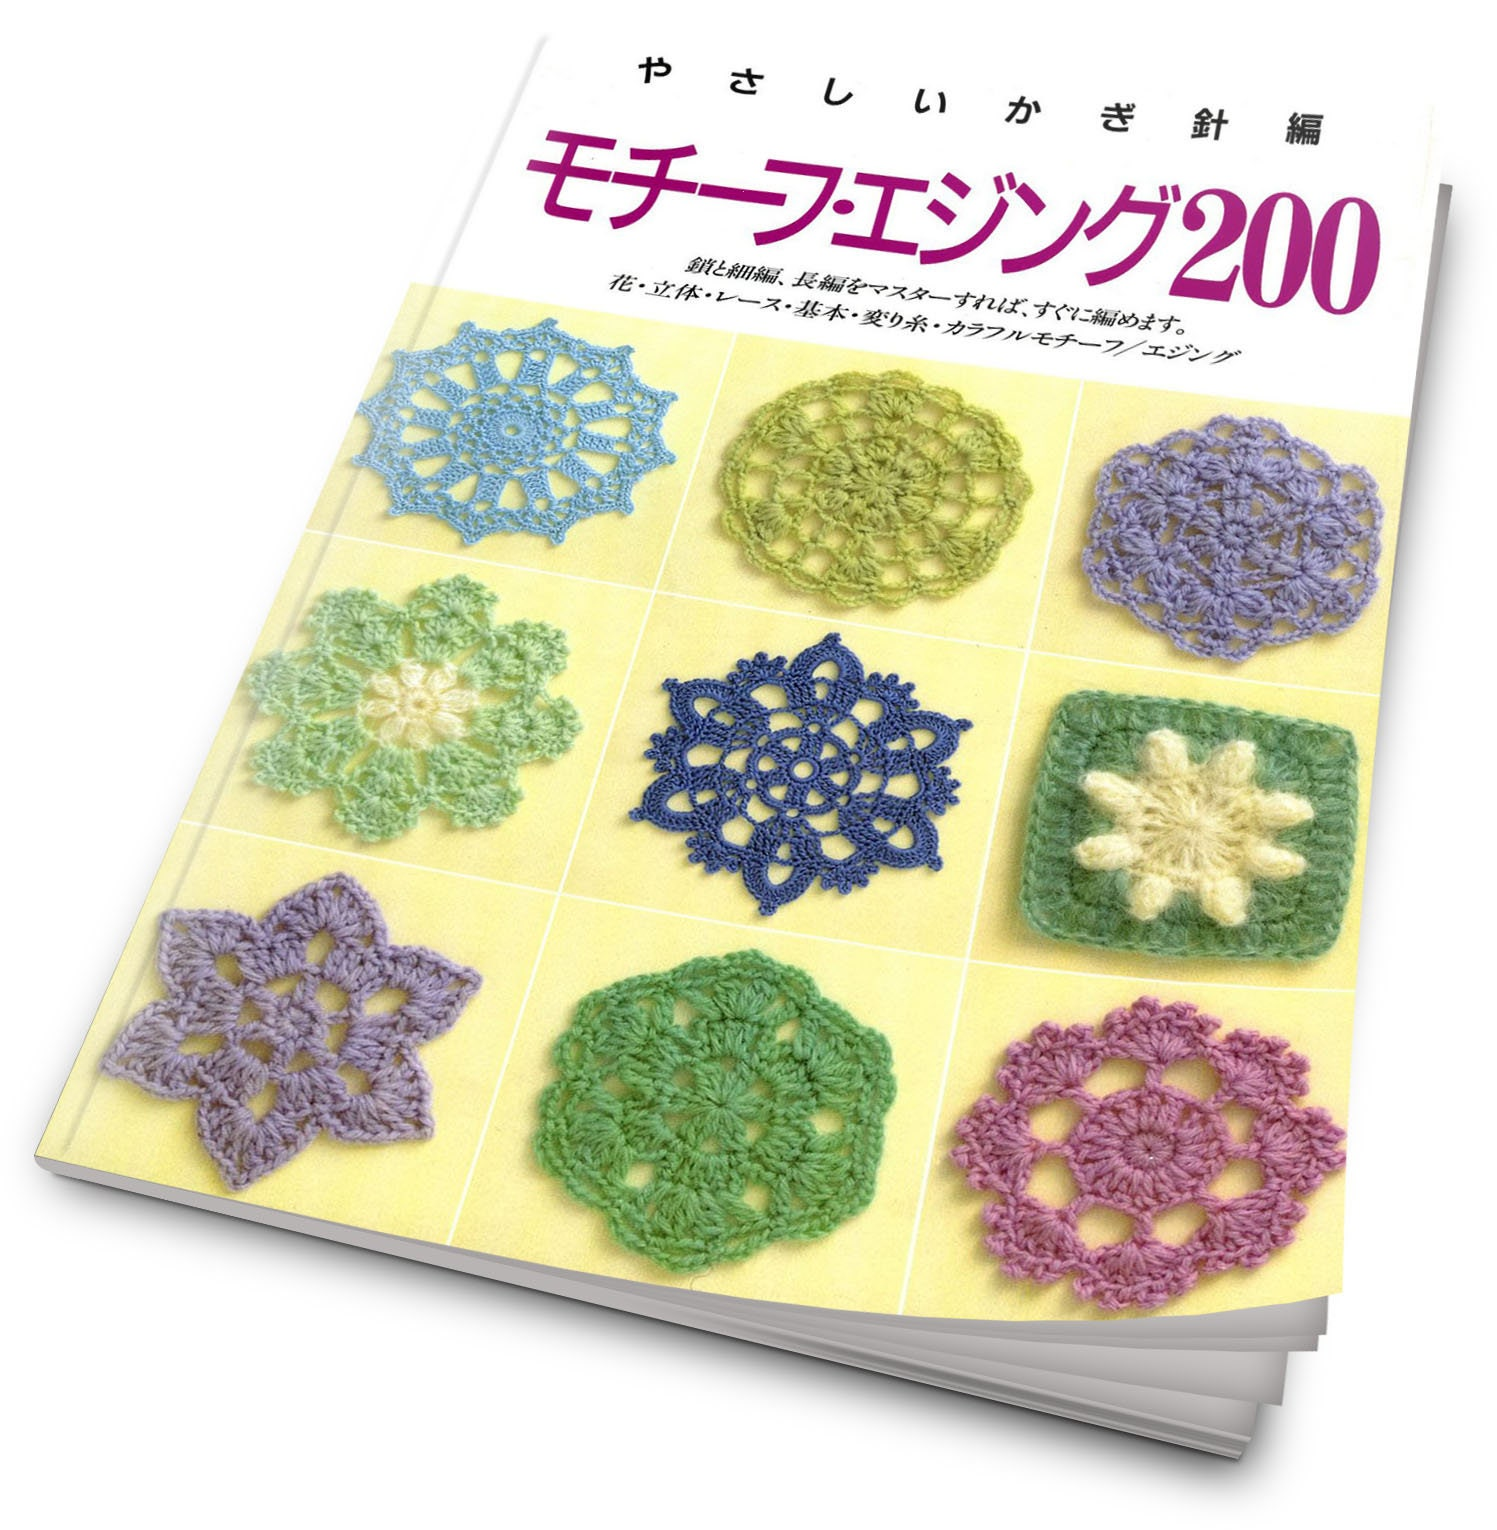 200 Crochet Patterns Book Motifs Edgings Japanese Crochet Etsy